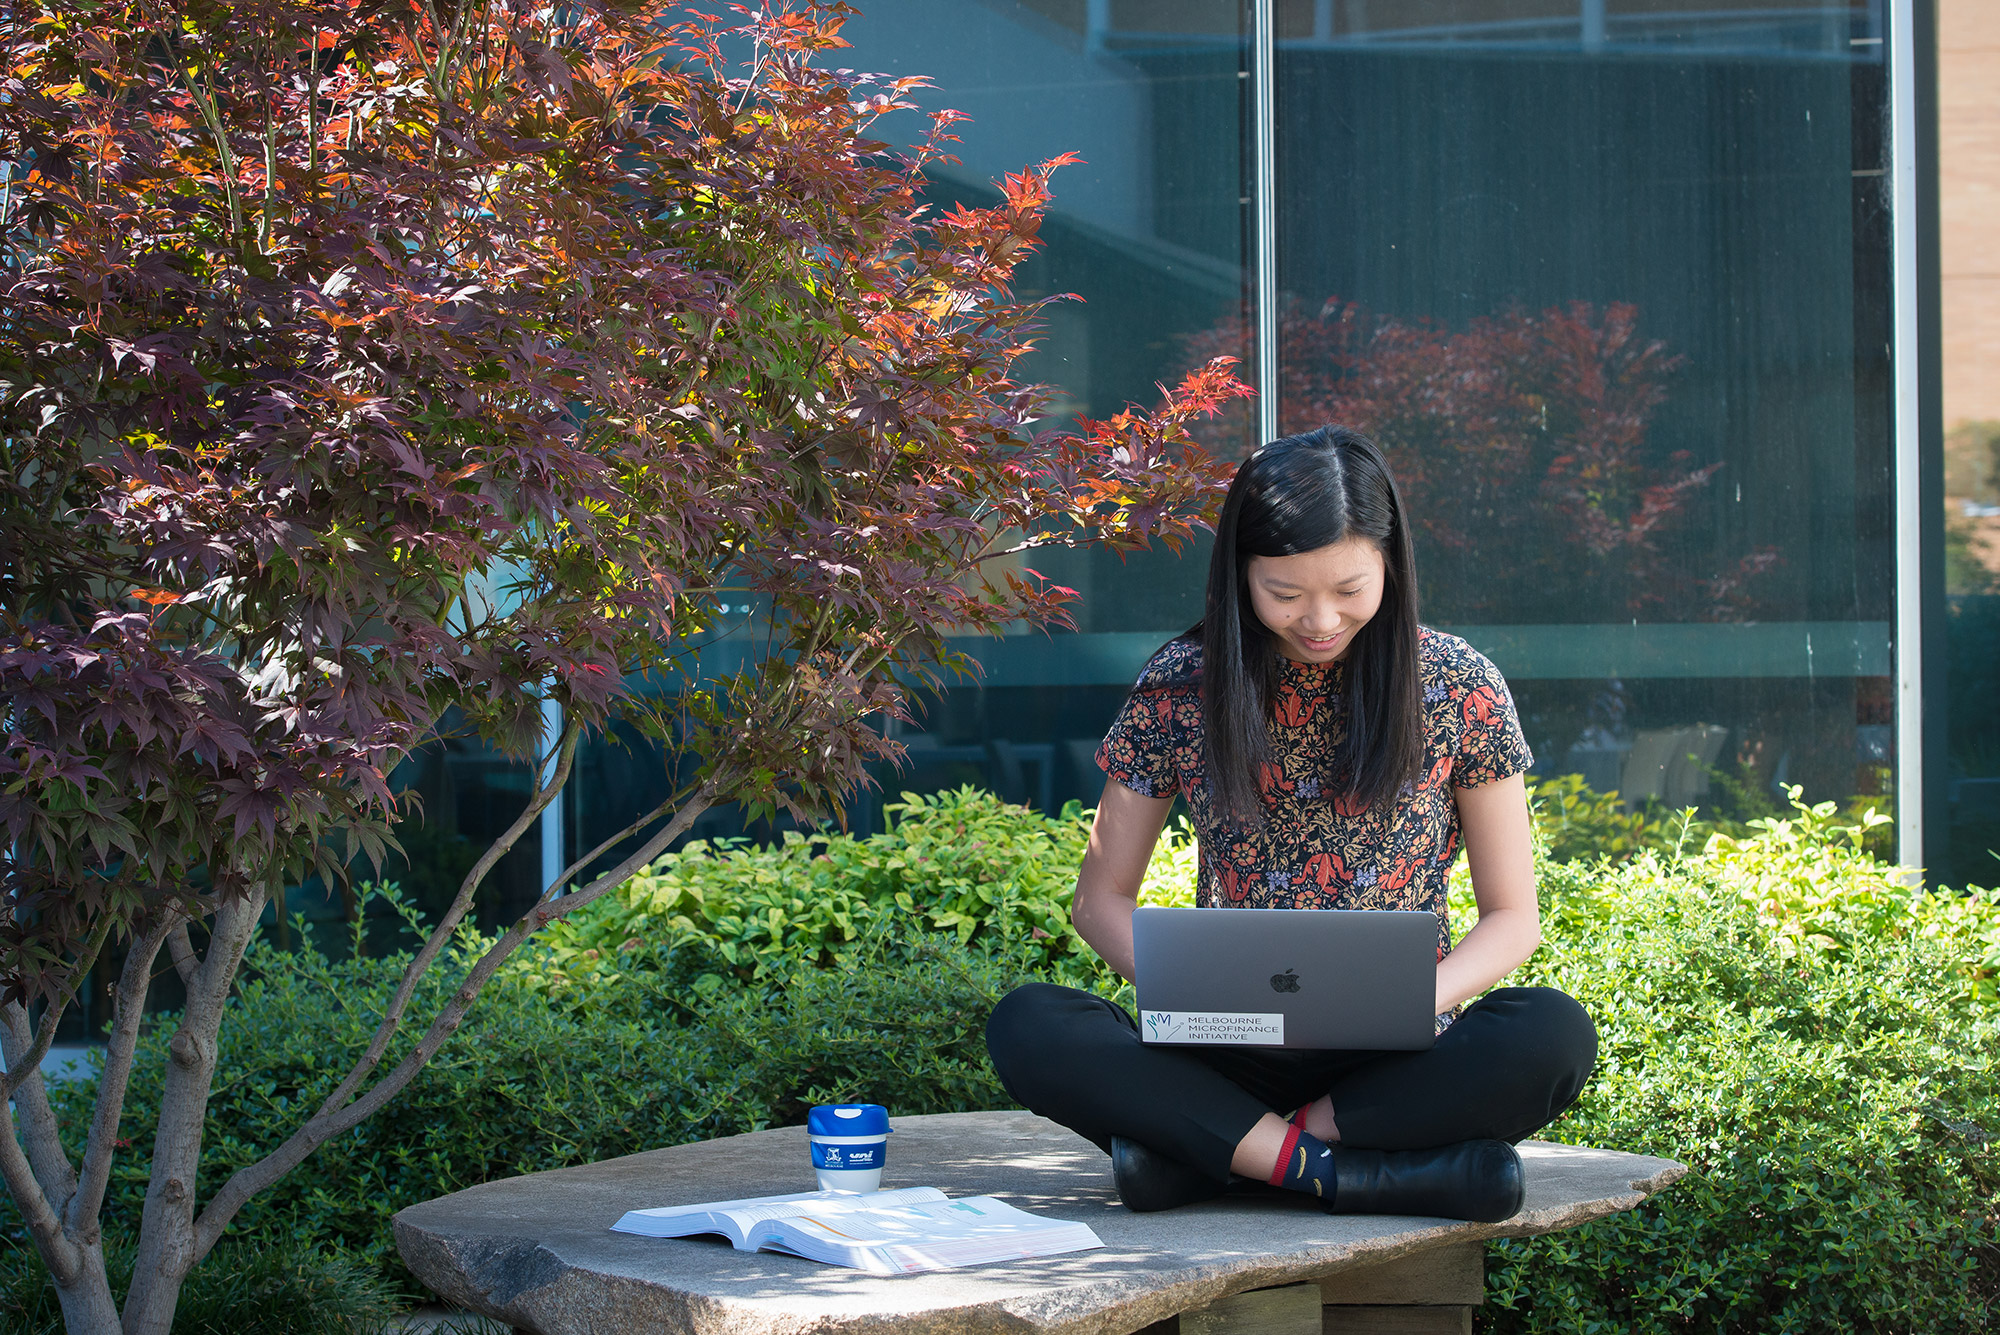 Female student sitting outside working on a laptop